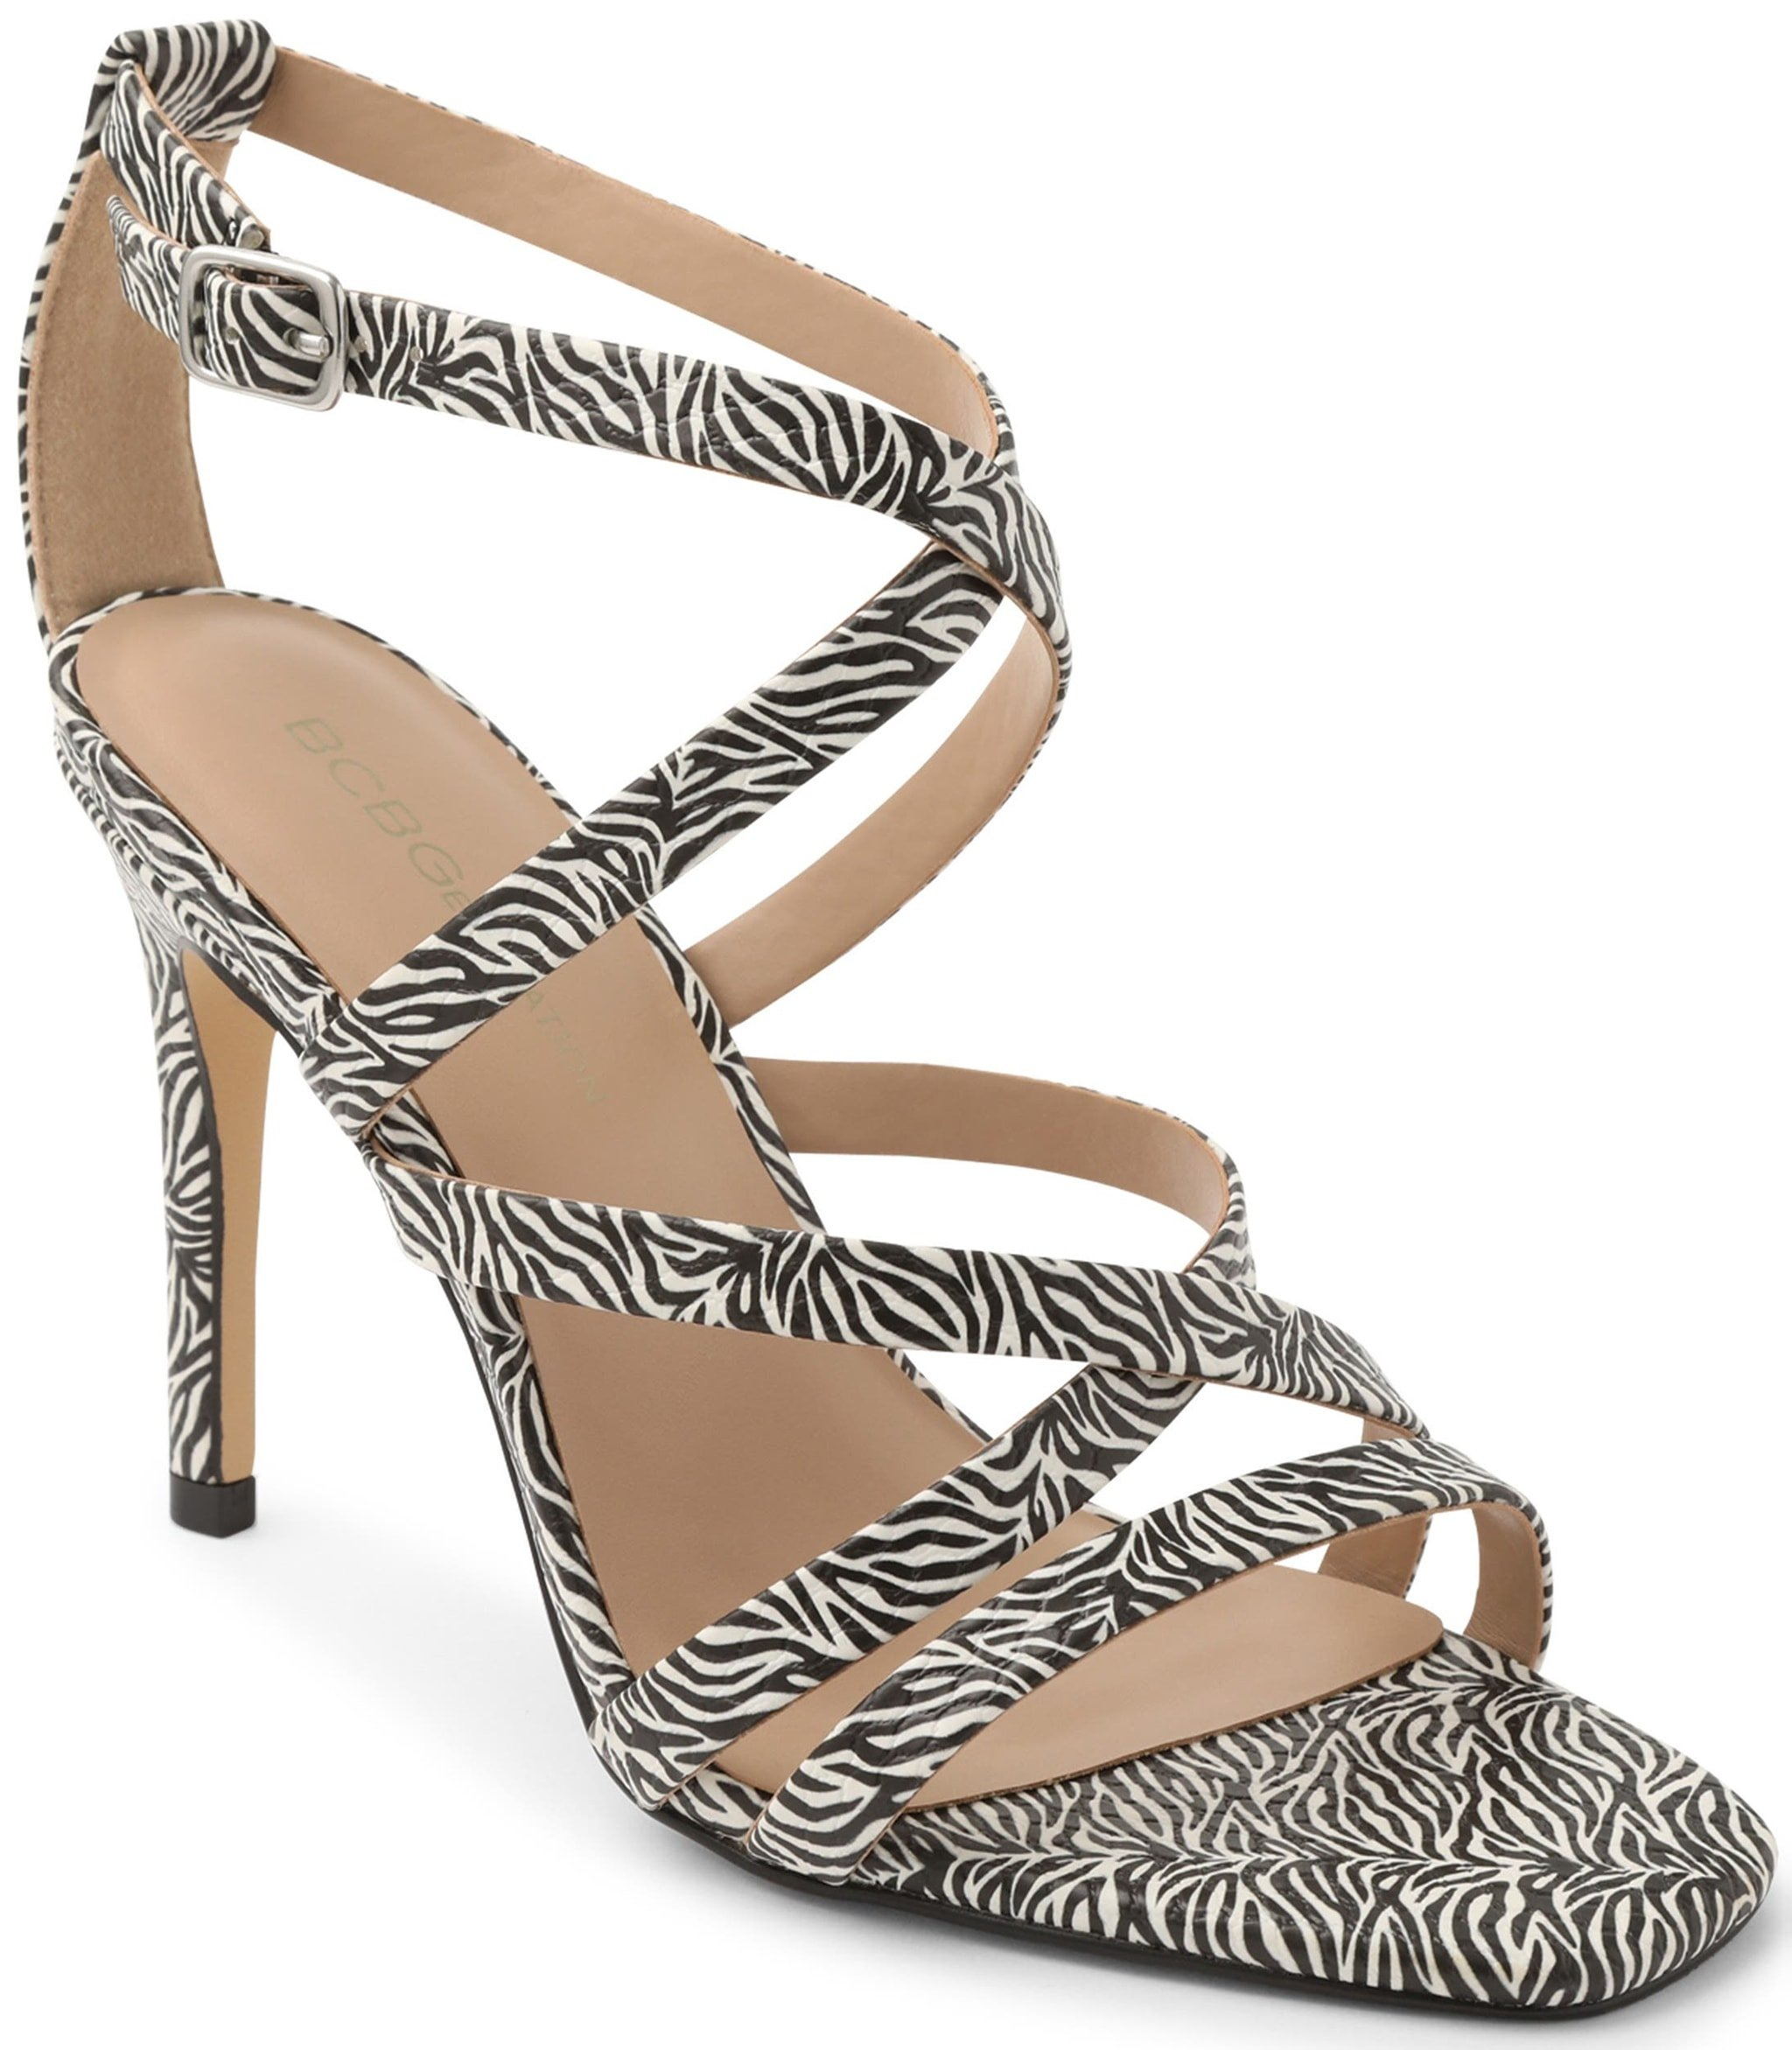 Slender crisscrossing straps and a stiletto heel elevate your entire wardrobe in these zebra print sandals from BCBGeneration